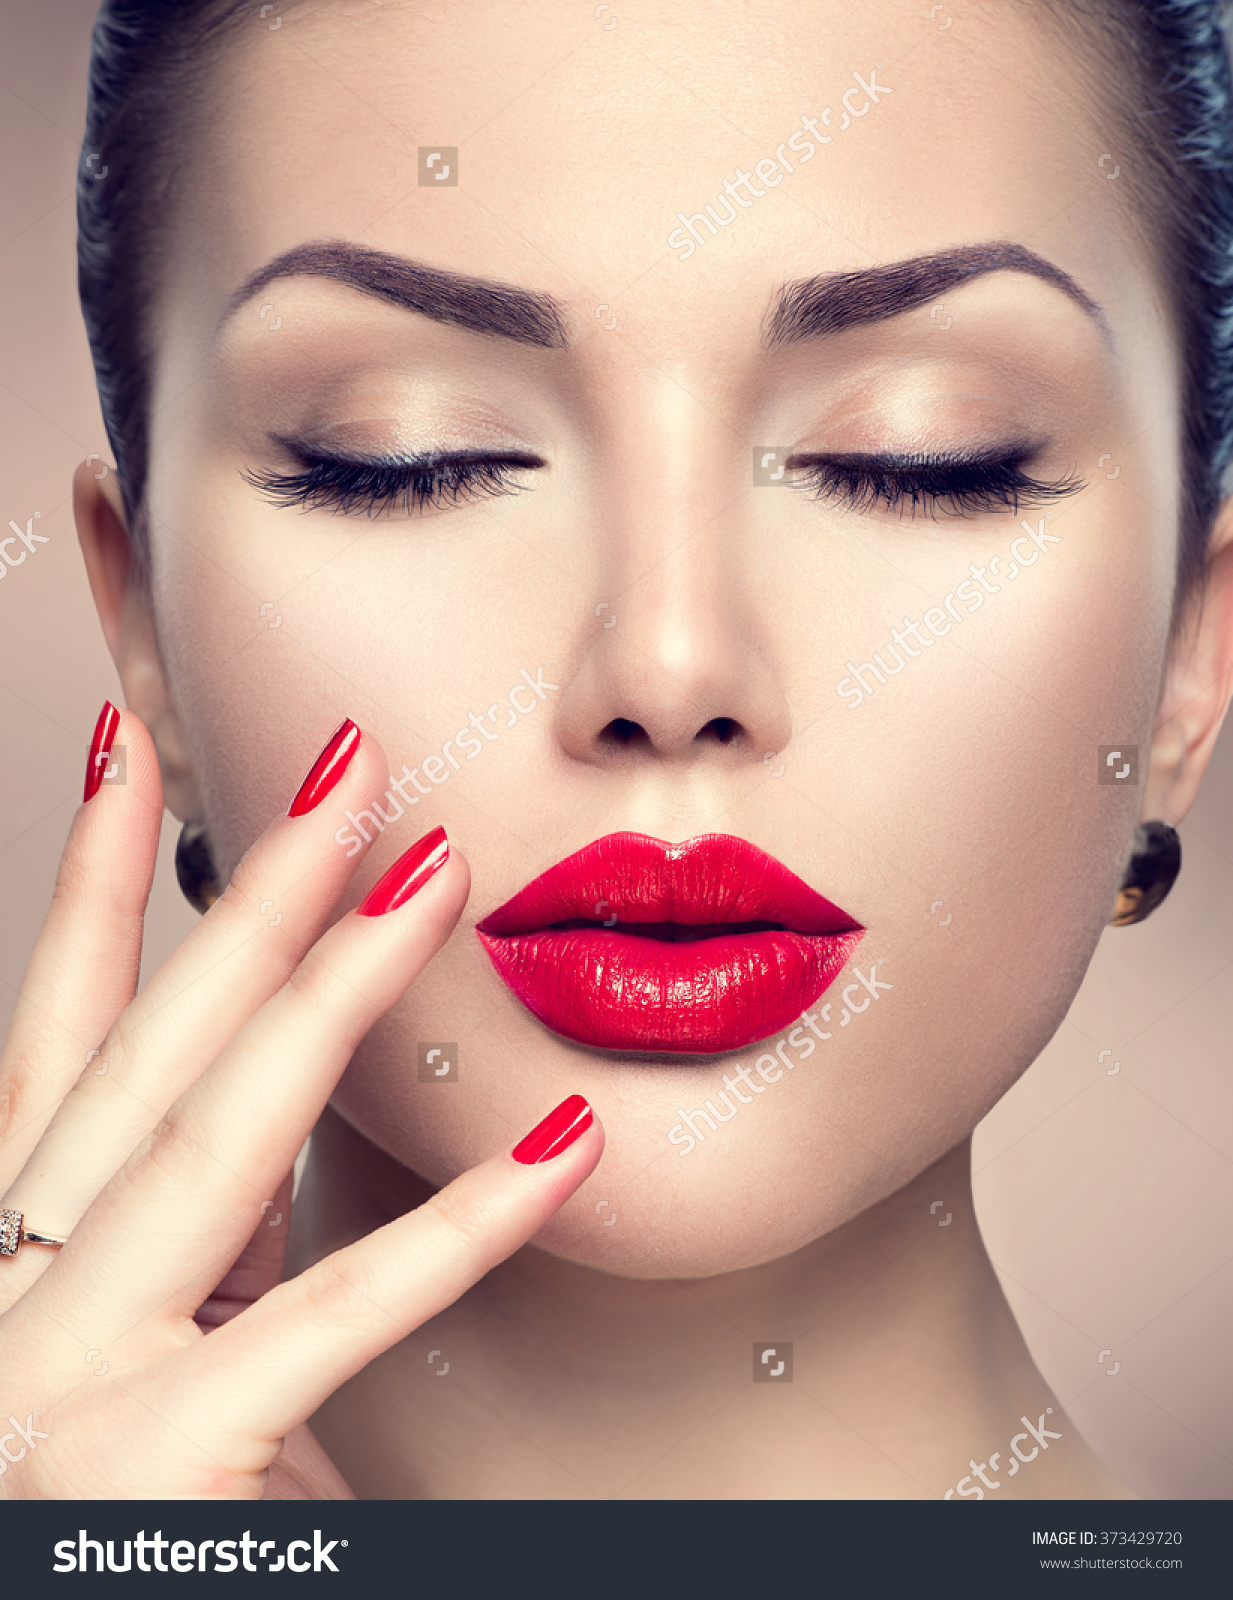 stock-photo-beautiful-fashion-woman-model-face-portrait-with-red ...